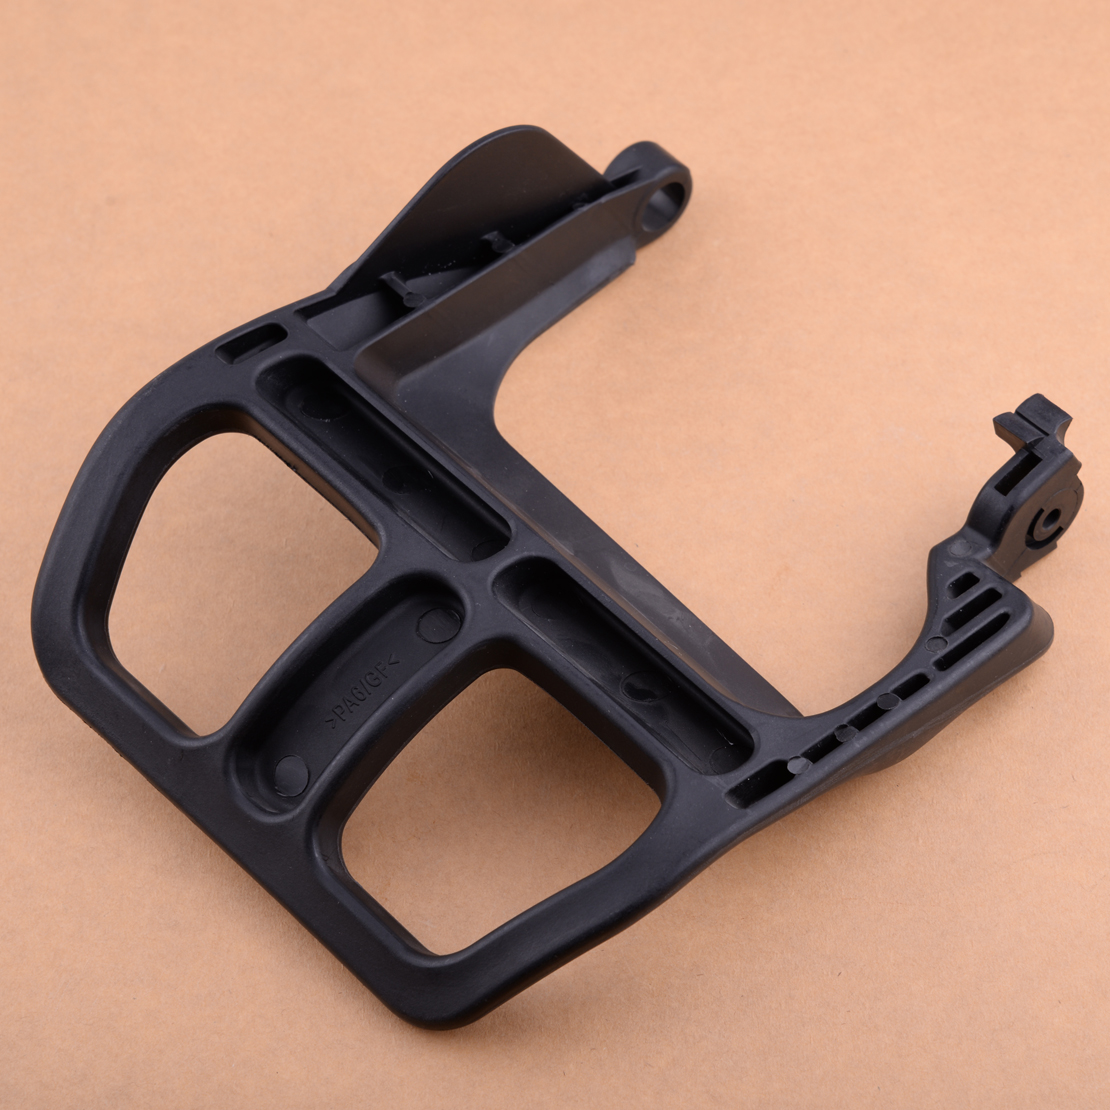 LETAOSK Chain Front Brake Handle Level Hand Guard Fit For STIHL Chainsaw 046 MS460 Replacement